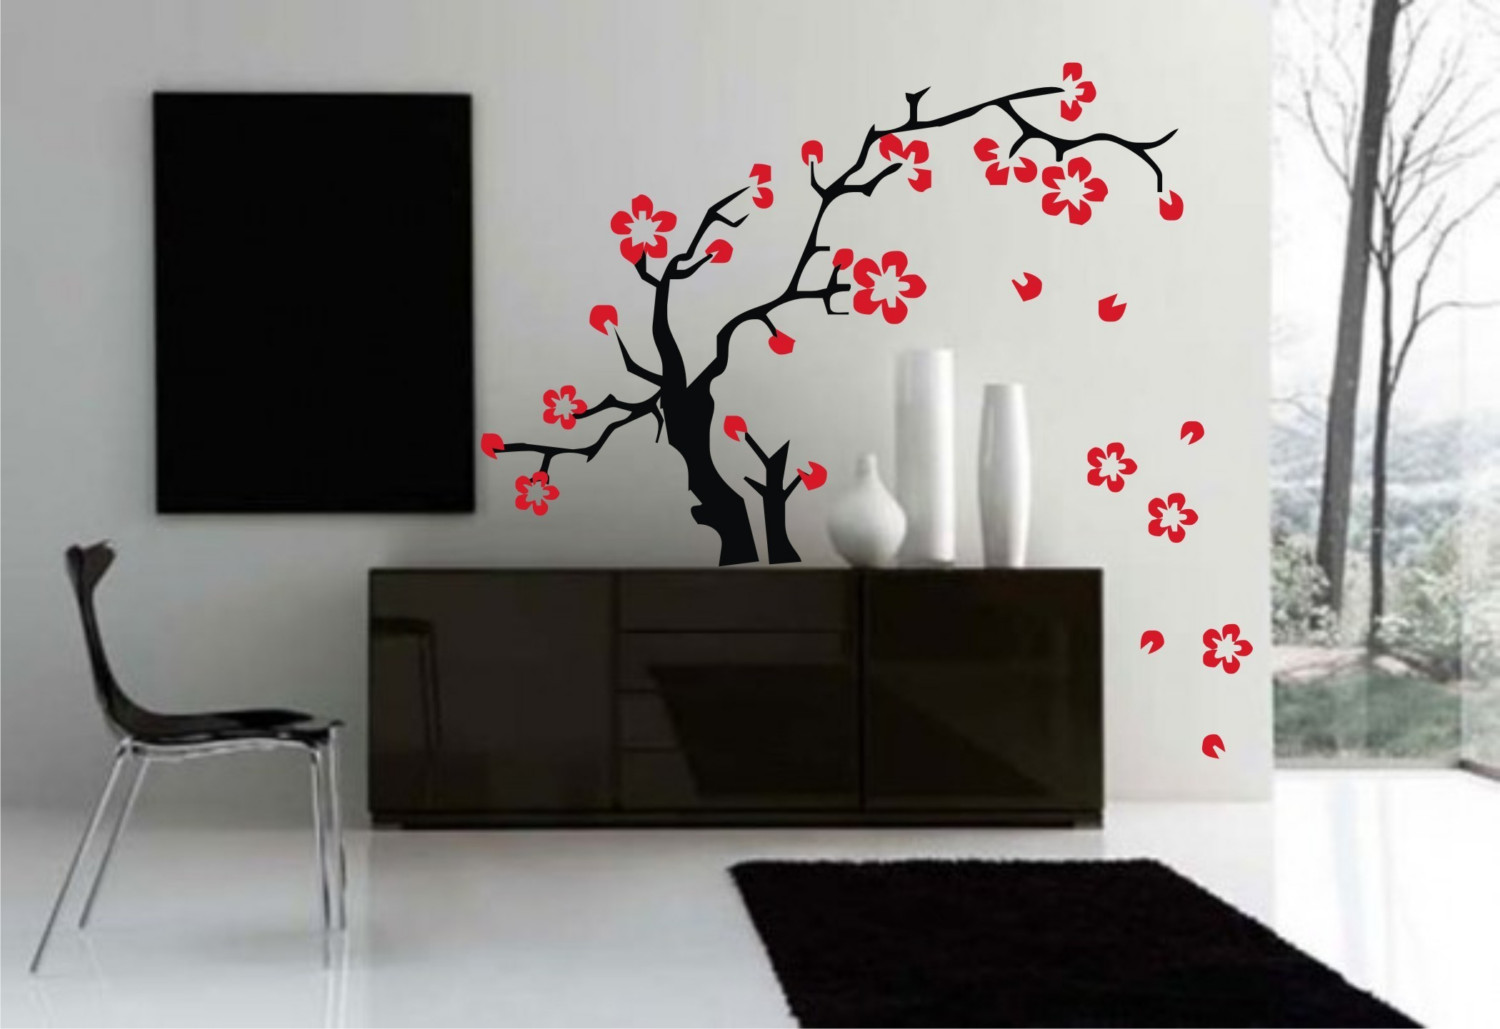 Japanese style decor apartments i like blog for Create wall mural